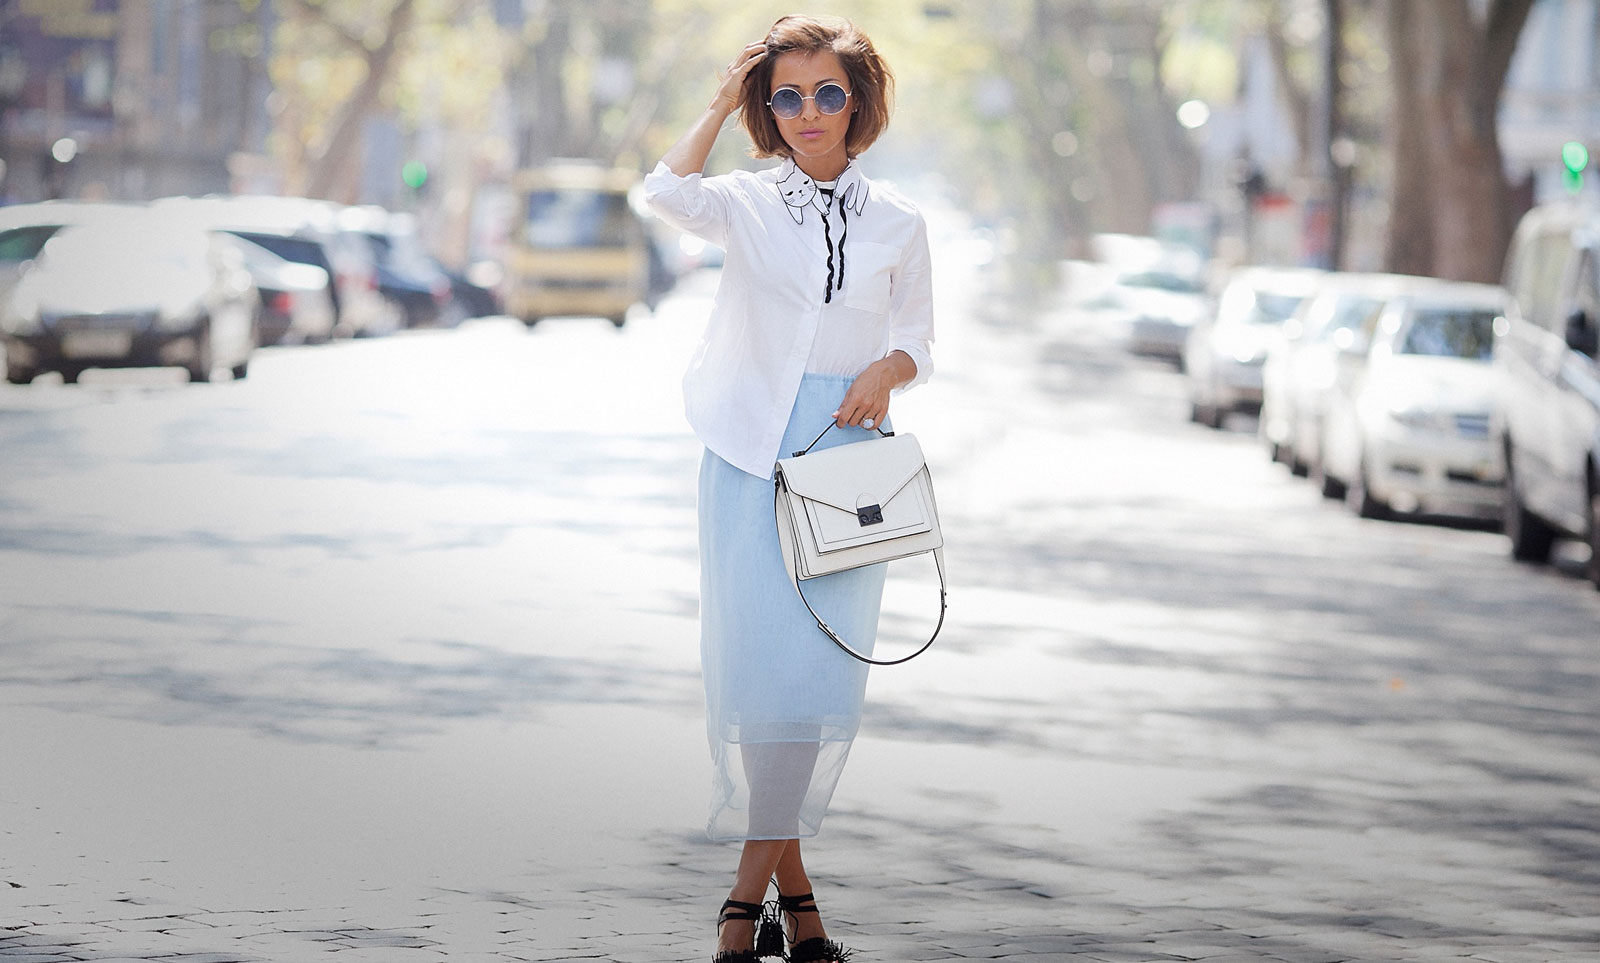 pencil skirt outfit, white shirt outfit, fall outfit ideas, fashion blogger Elena Galant Girl